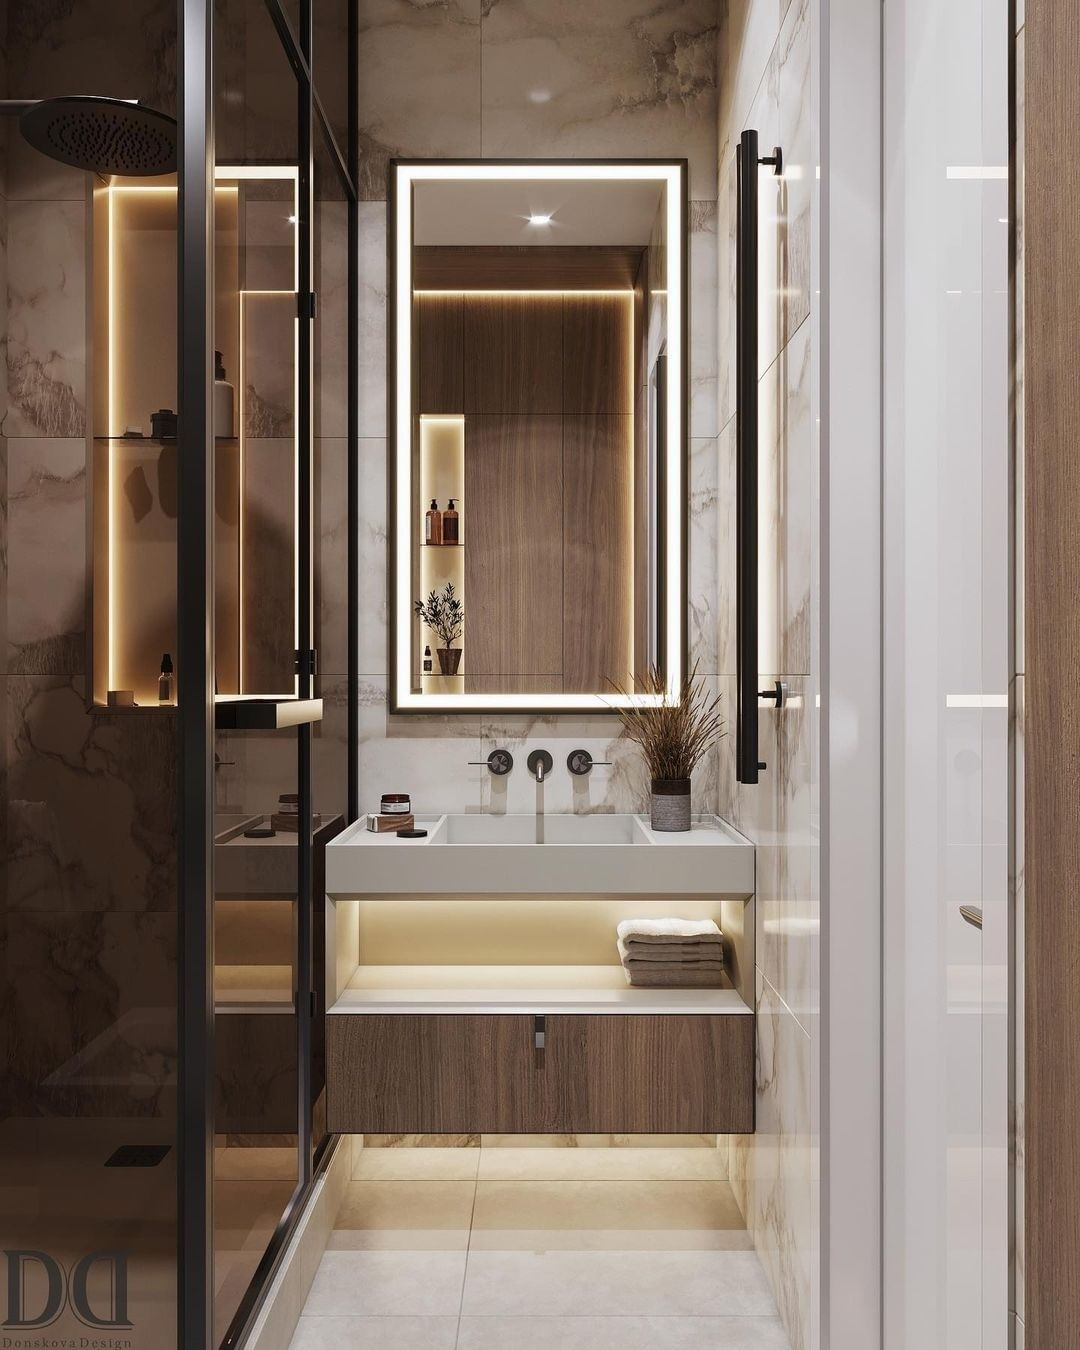 Beautiful Small Bathroom  small bathroom Small Bathroom Designs: How to turn them into Luxurious and Spacious Oasis 164893576 896625974435795 459445584494523750 n 1